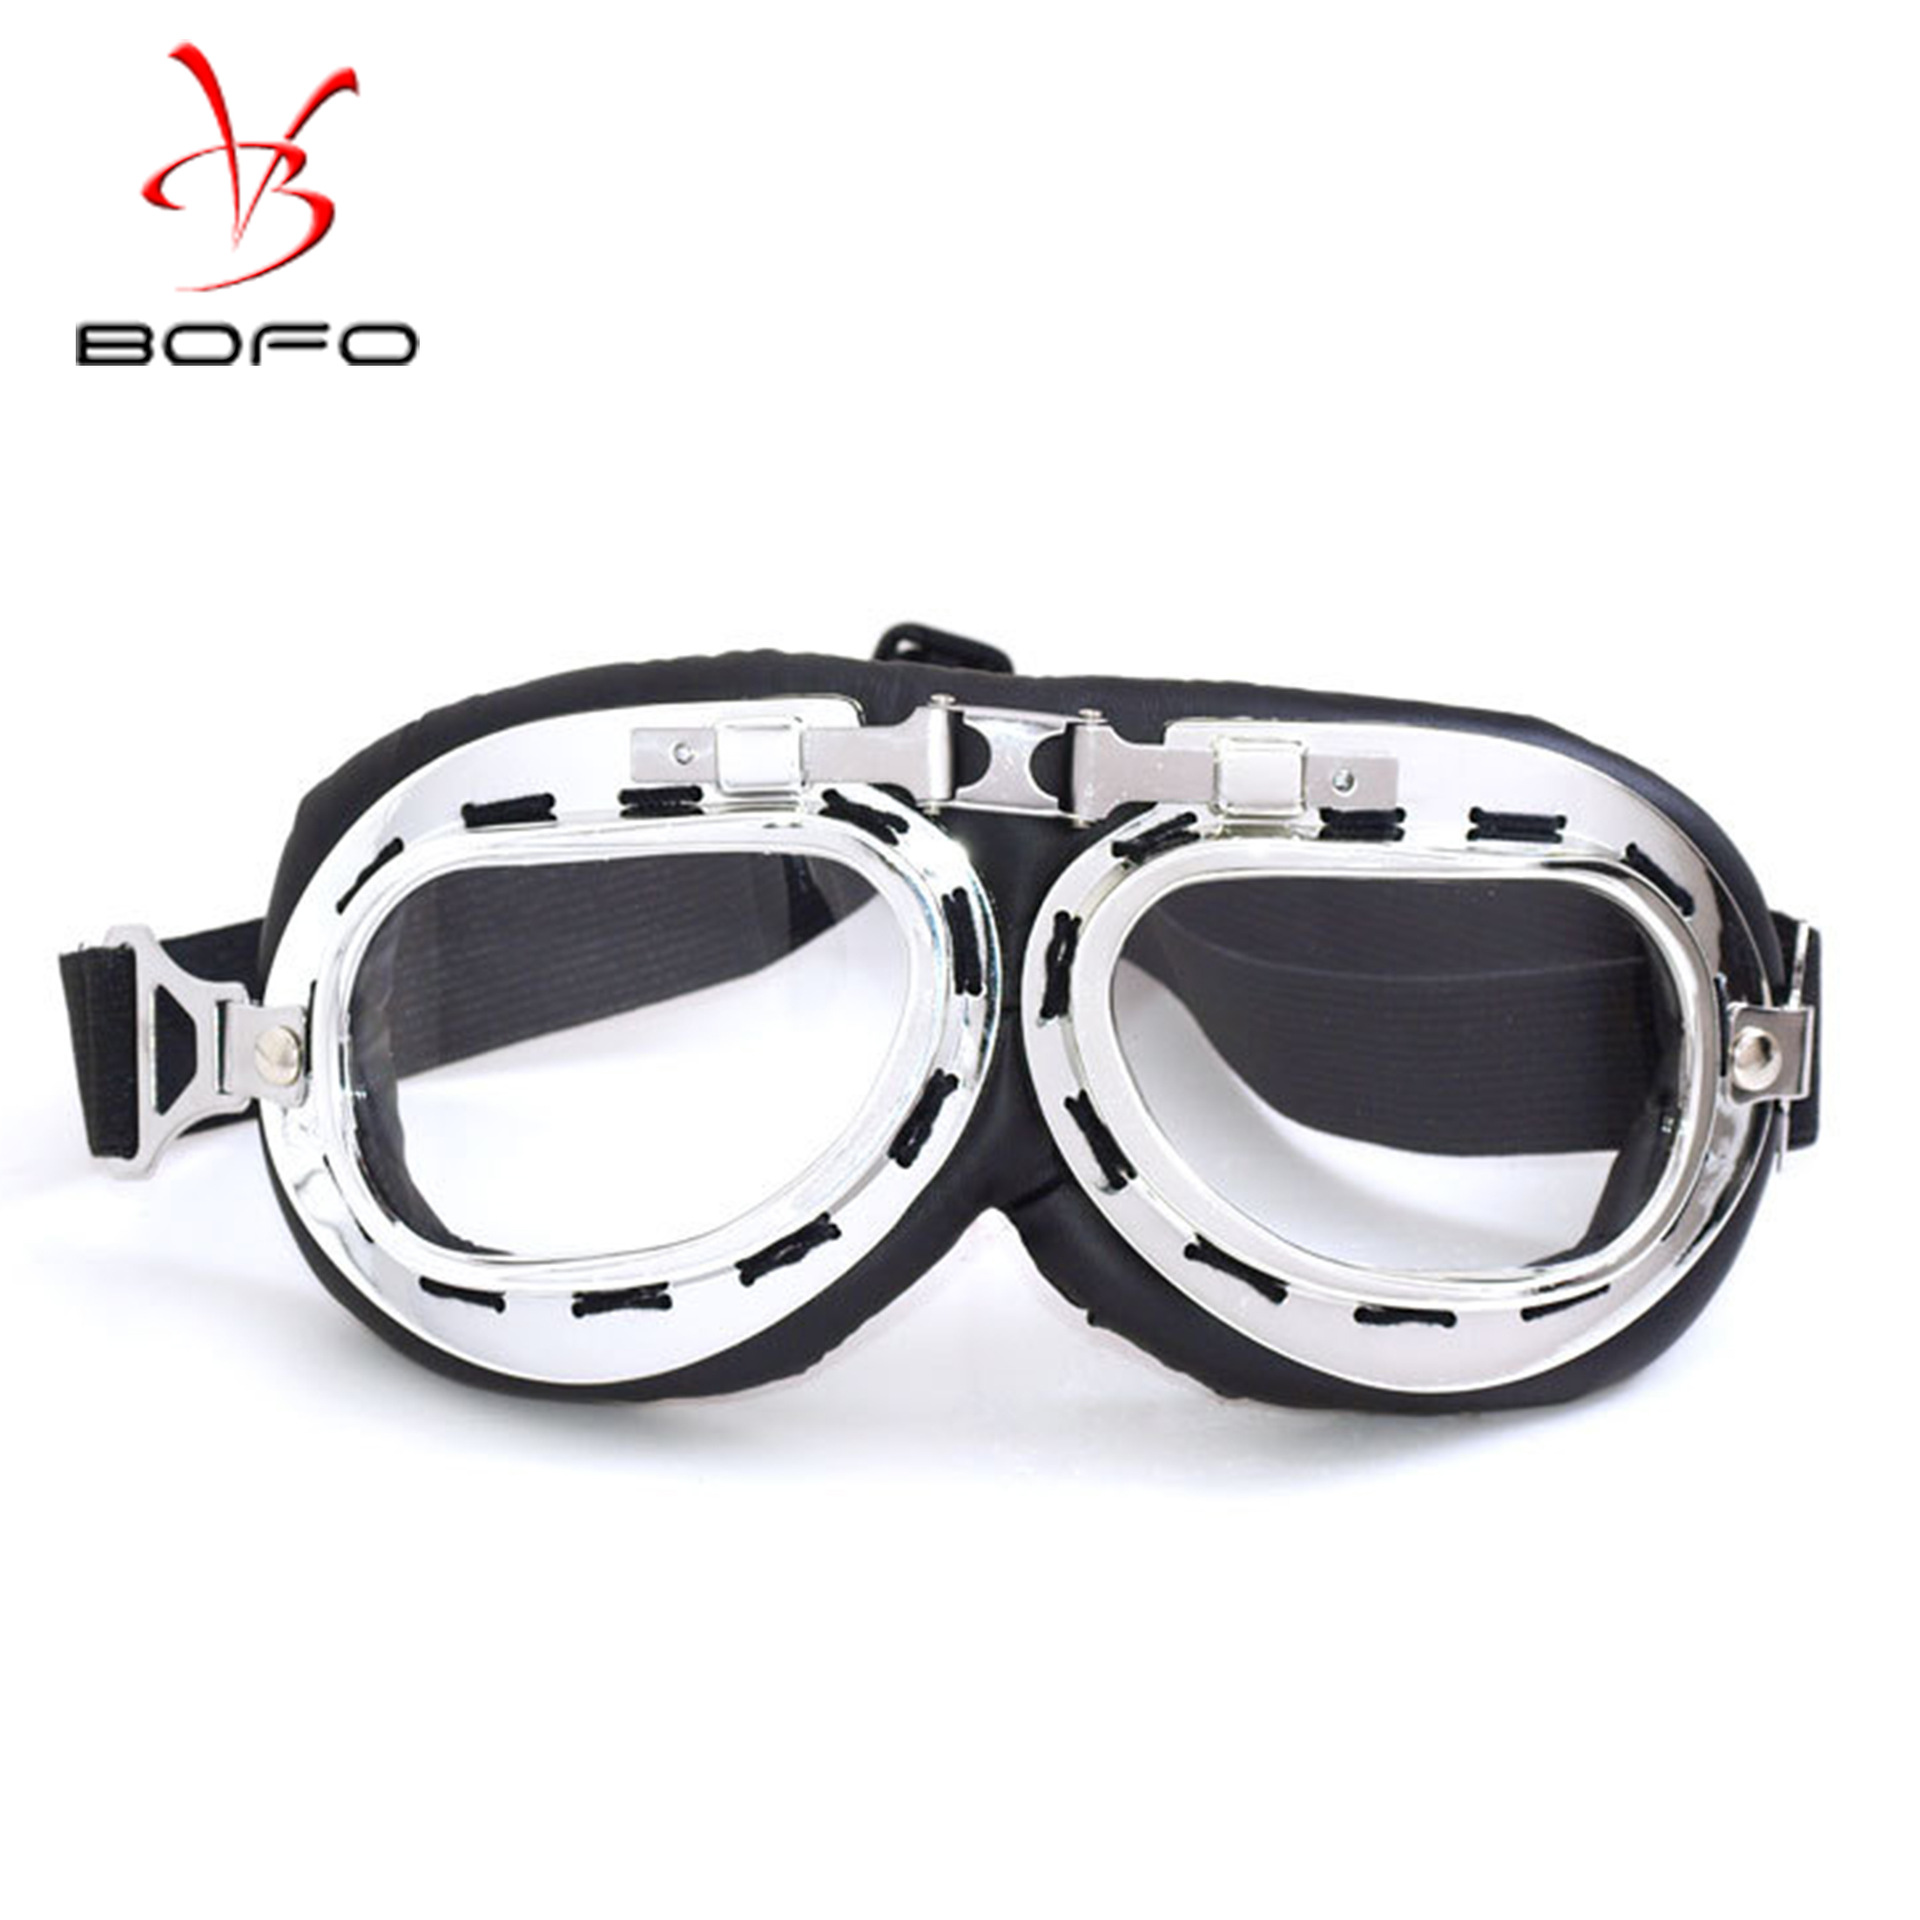 Off-road Harley Goggles Harley Glasses Motorcycle Wind-proof Glasses Motorcycle Goggles Eye-protection Goggles A Generation Of F